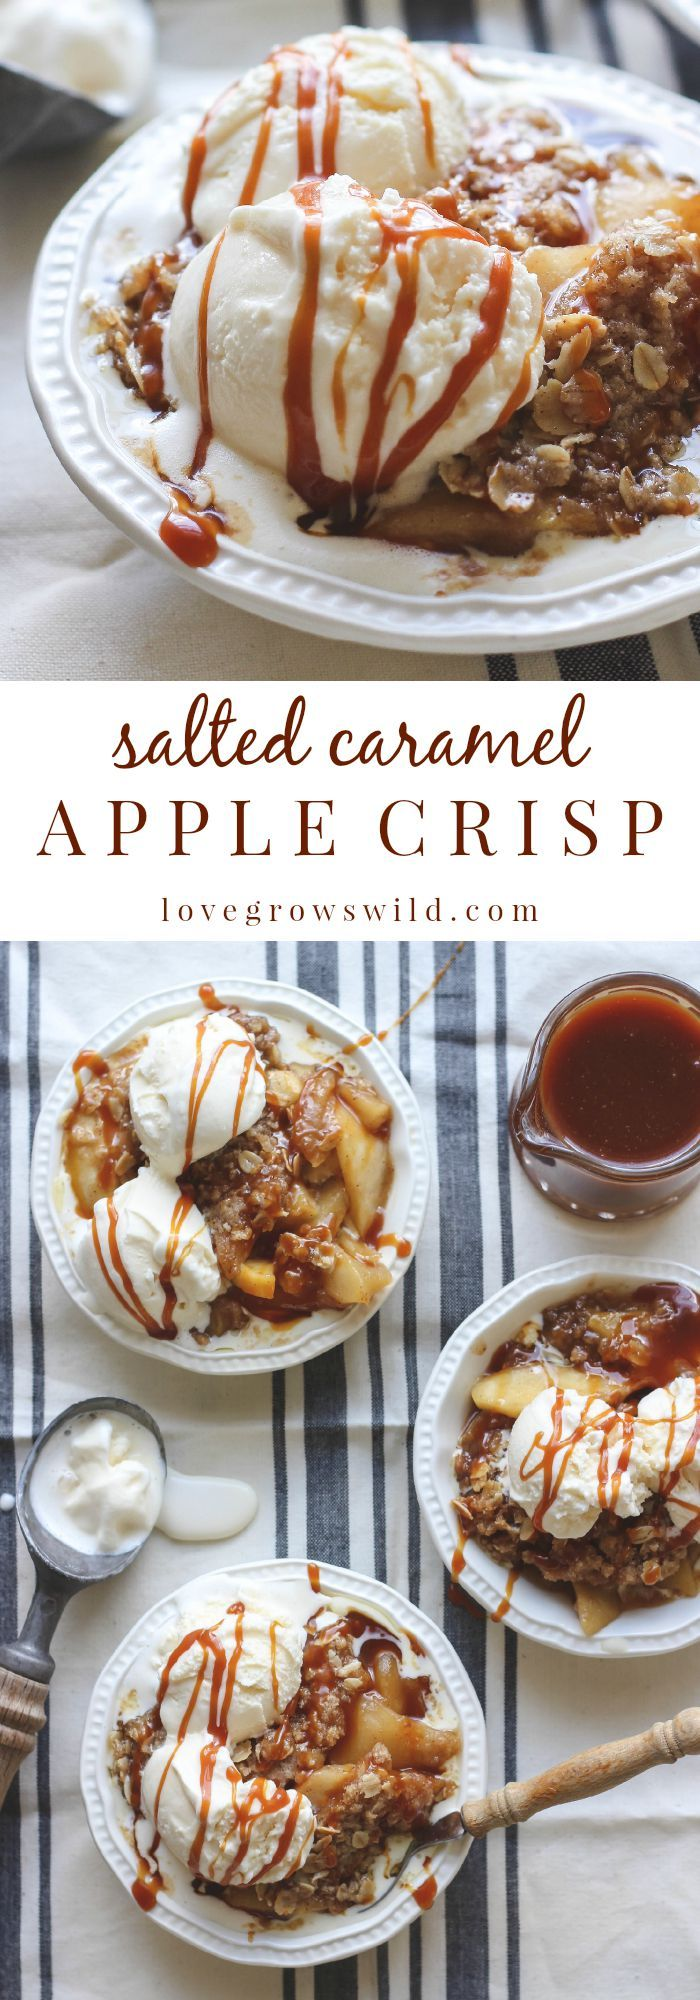 Salted caramel apple crisp served warm with scoops of vanilla ice cream and extra salted caramel drizzled on top... the perfect dessert!